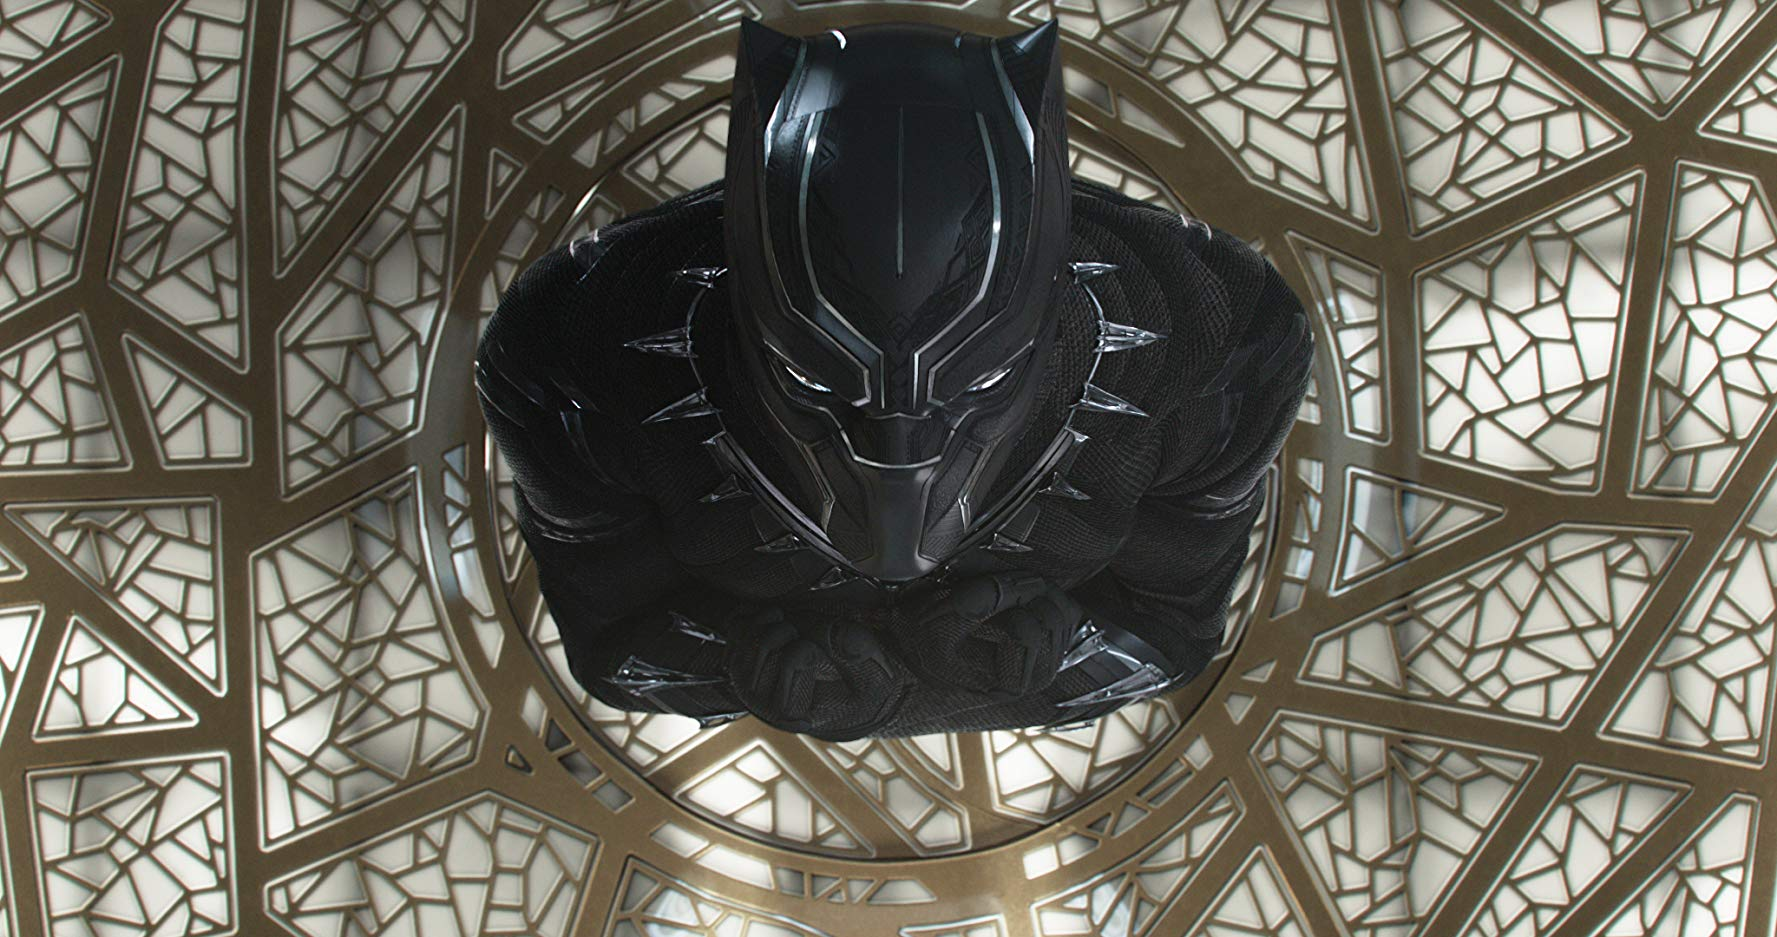 Captura de 'Black Panther'